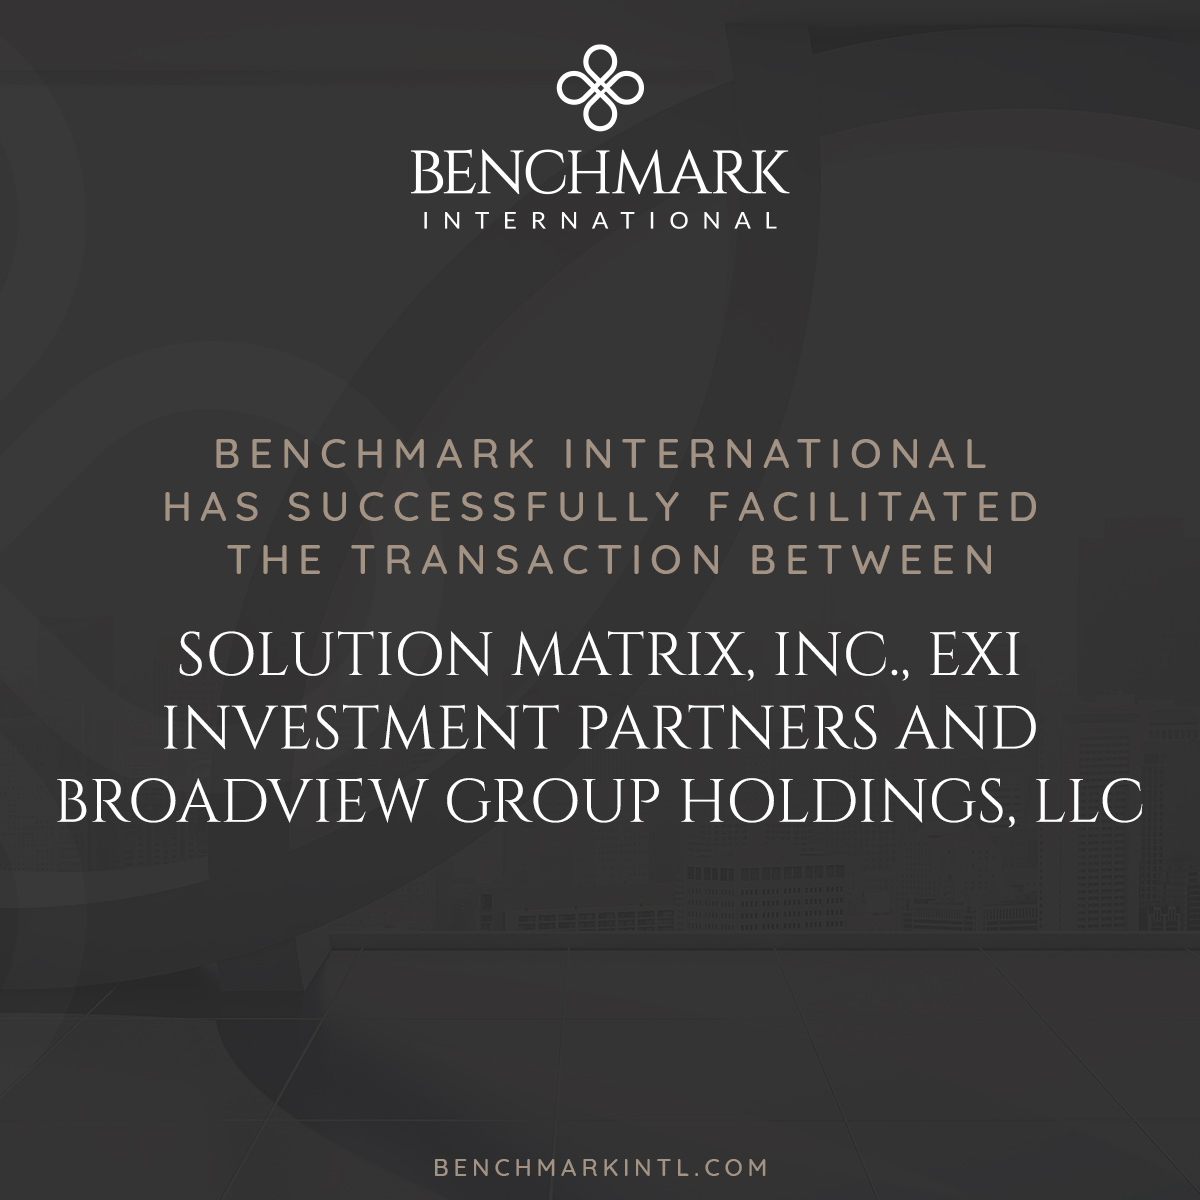 Solution_Matrix,_Inc.,_EXI_Investment_Partners_and_Broadview_Group_Holdings_LLC_Social